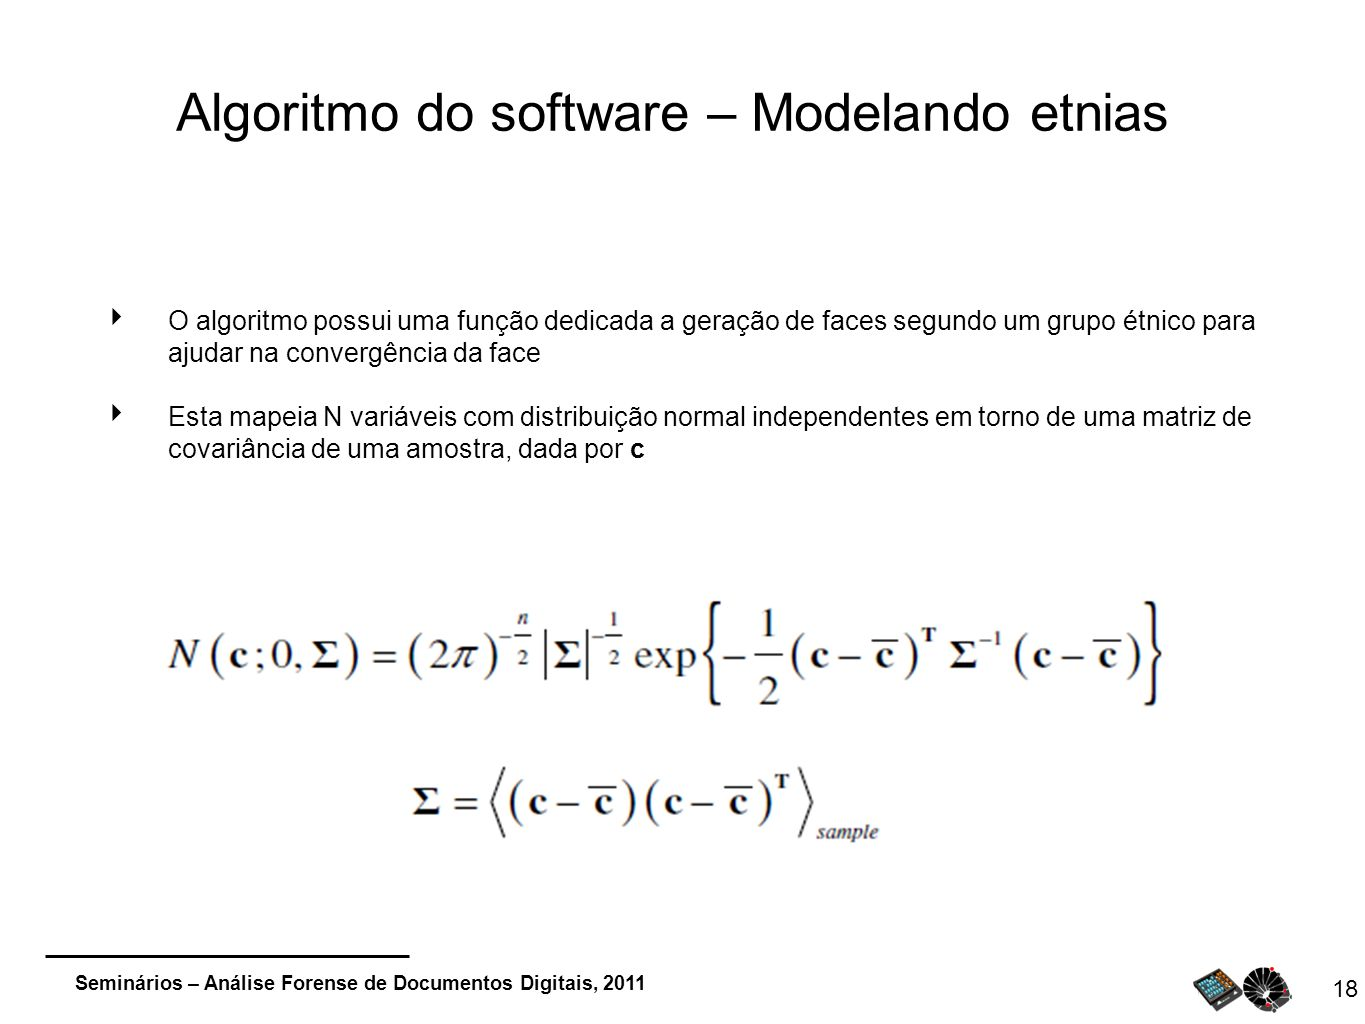 Algoritmo do software – Modelando etnias